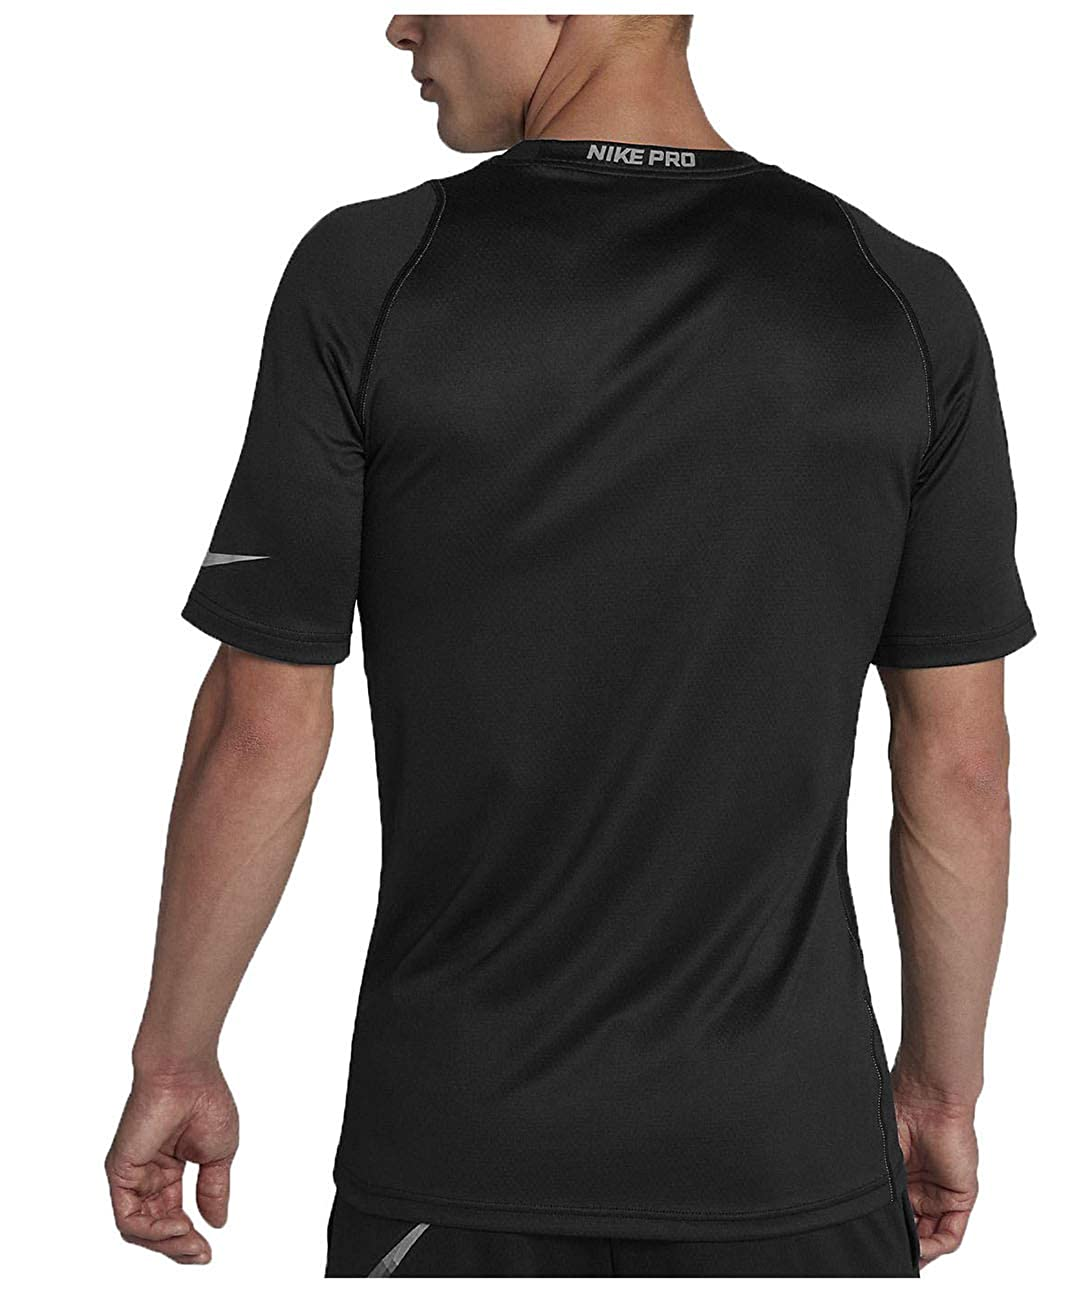 3d1fcf99d Amazon.com: NIKE Men's Pro Fitted Short Sleeve Shirt: Clothing